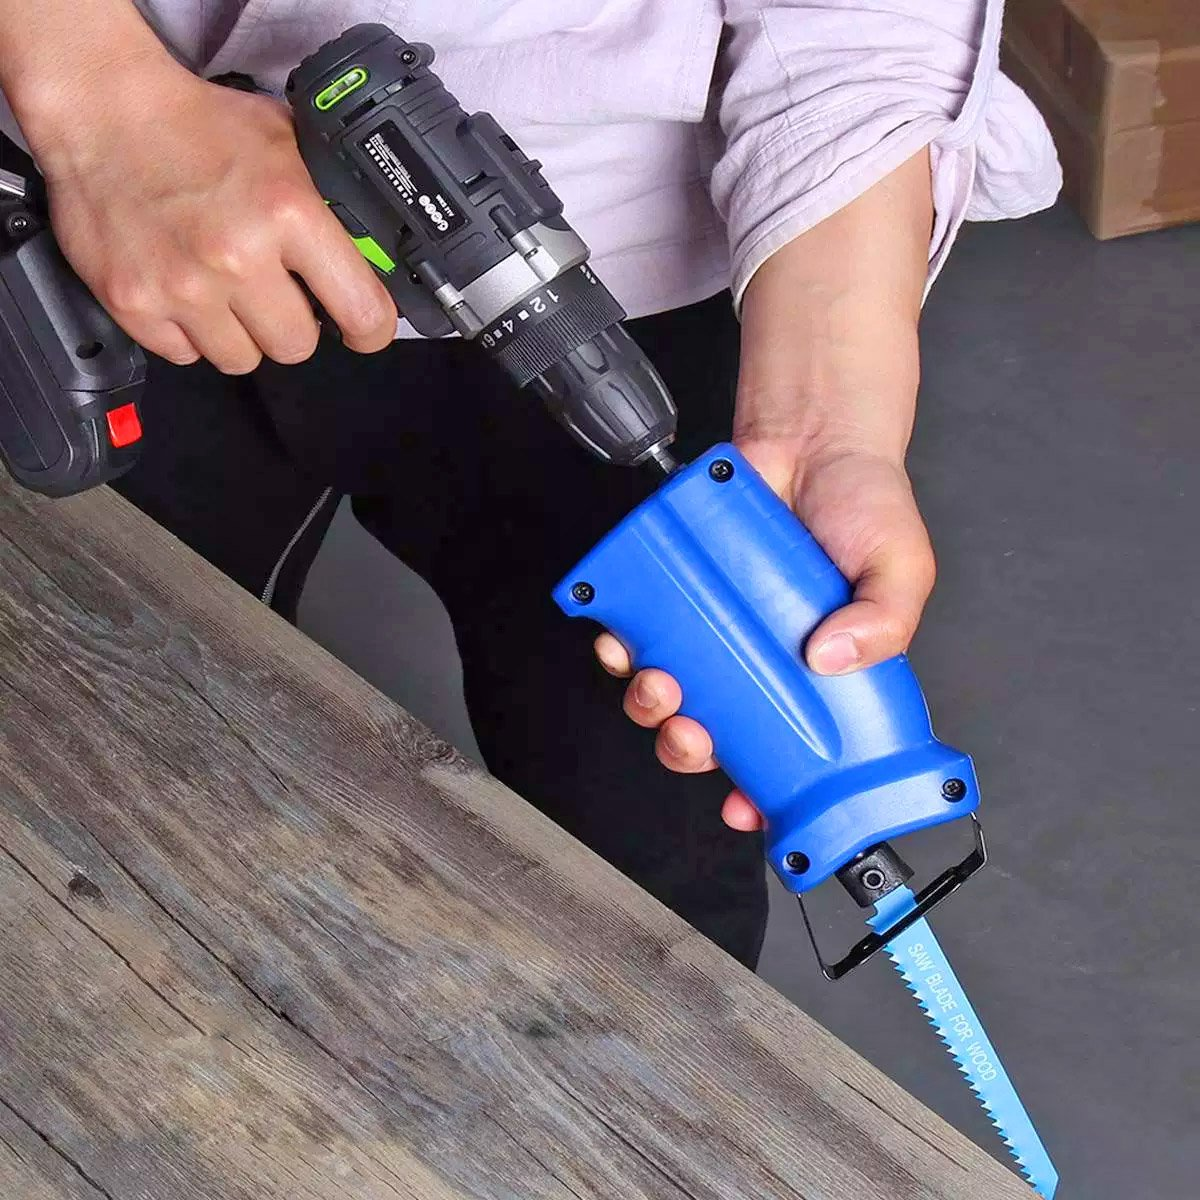 NEW | TOPNORTH® TOOLS DRILL RECIPROCATING SAW ATTACHMENT - Back to RealiTee®